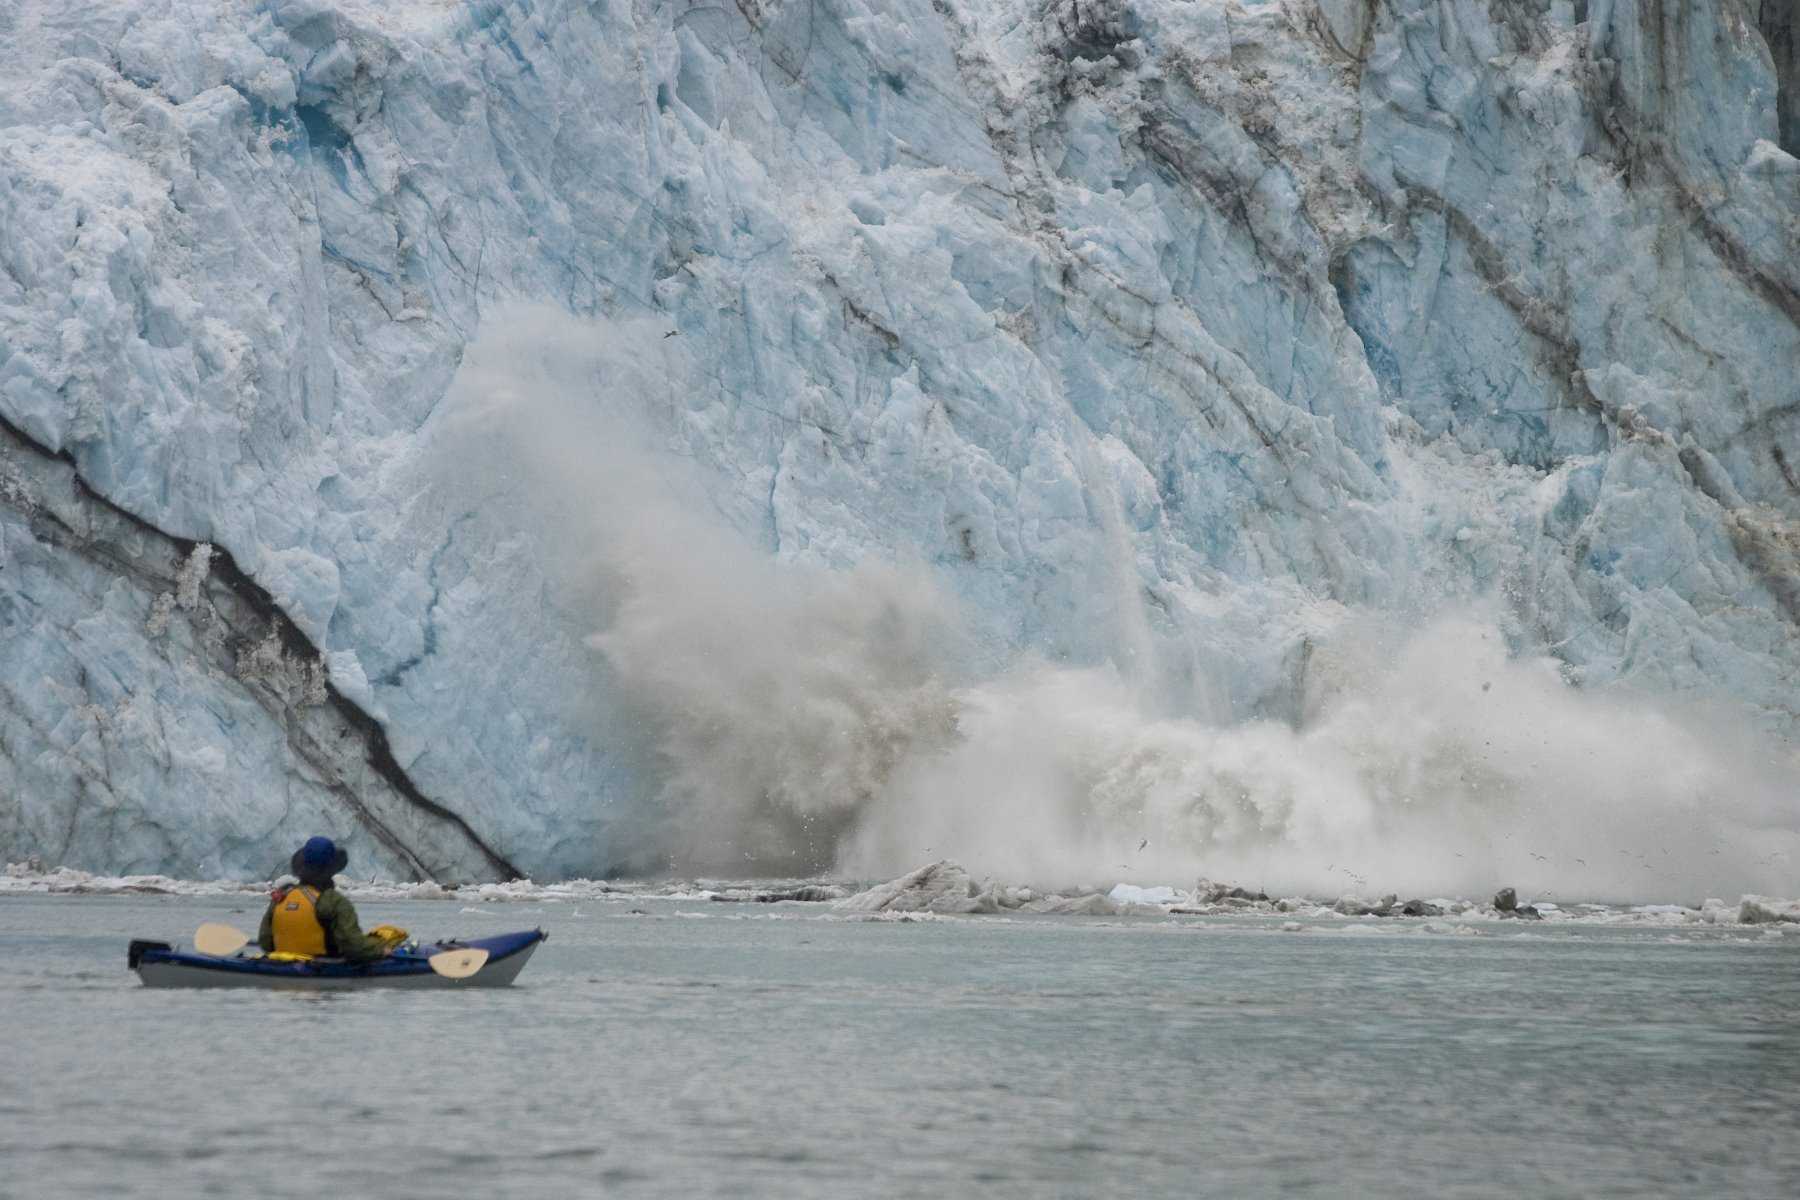 The U.S. Coast Guard recommends that all vessels remain one quarter mile off the face of tidewater glaciers.